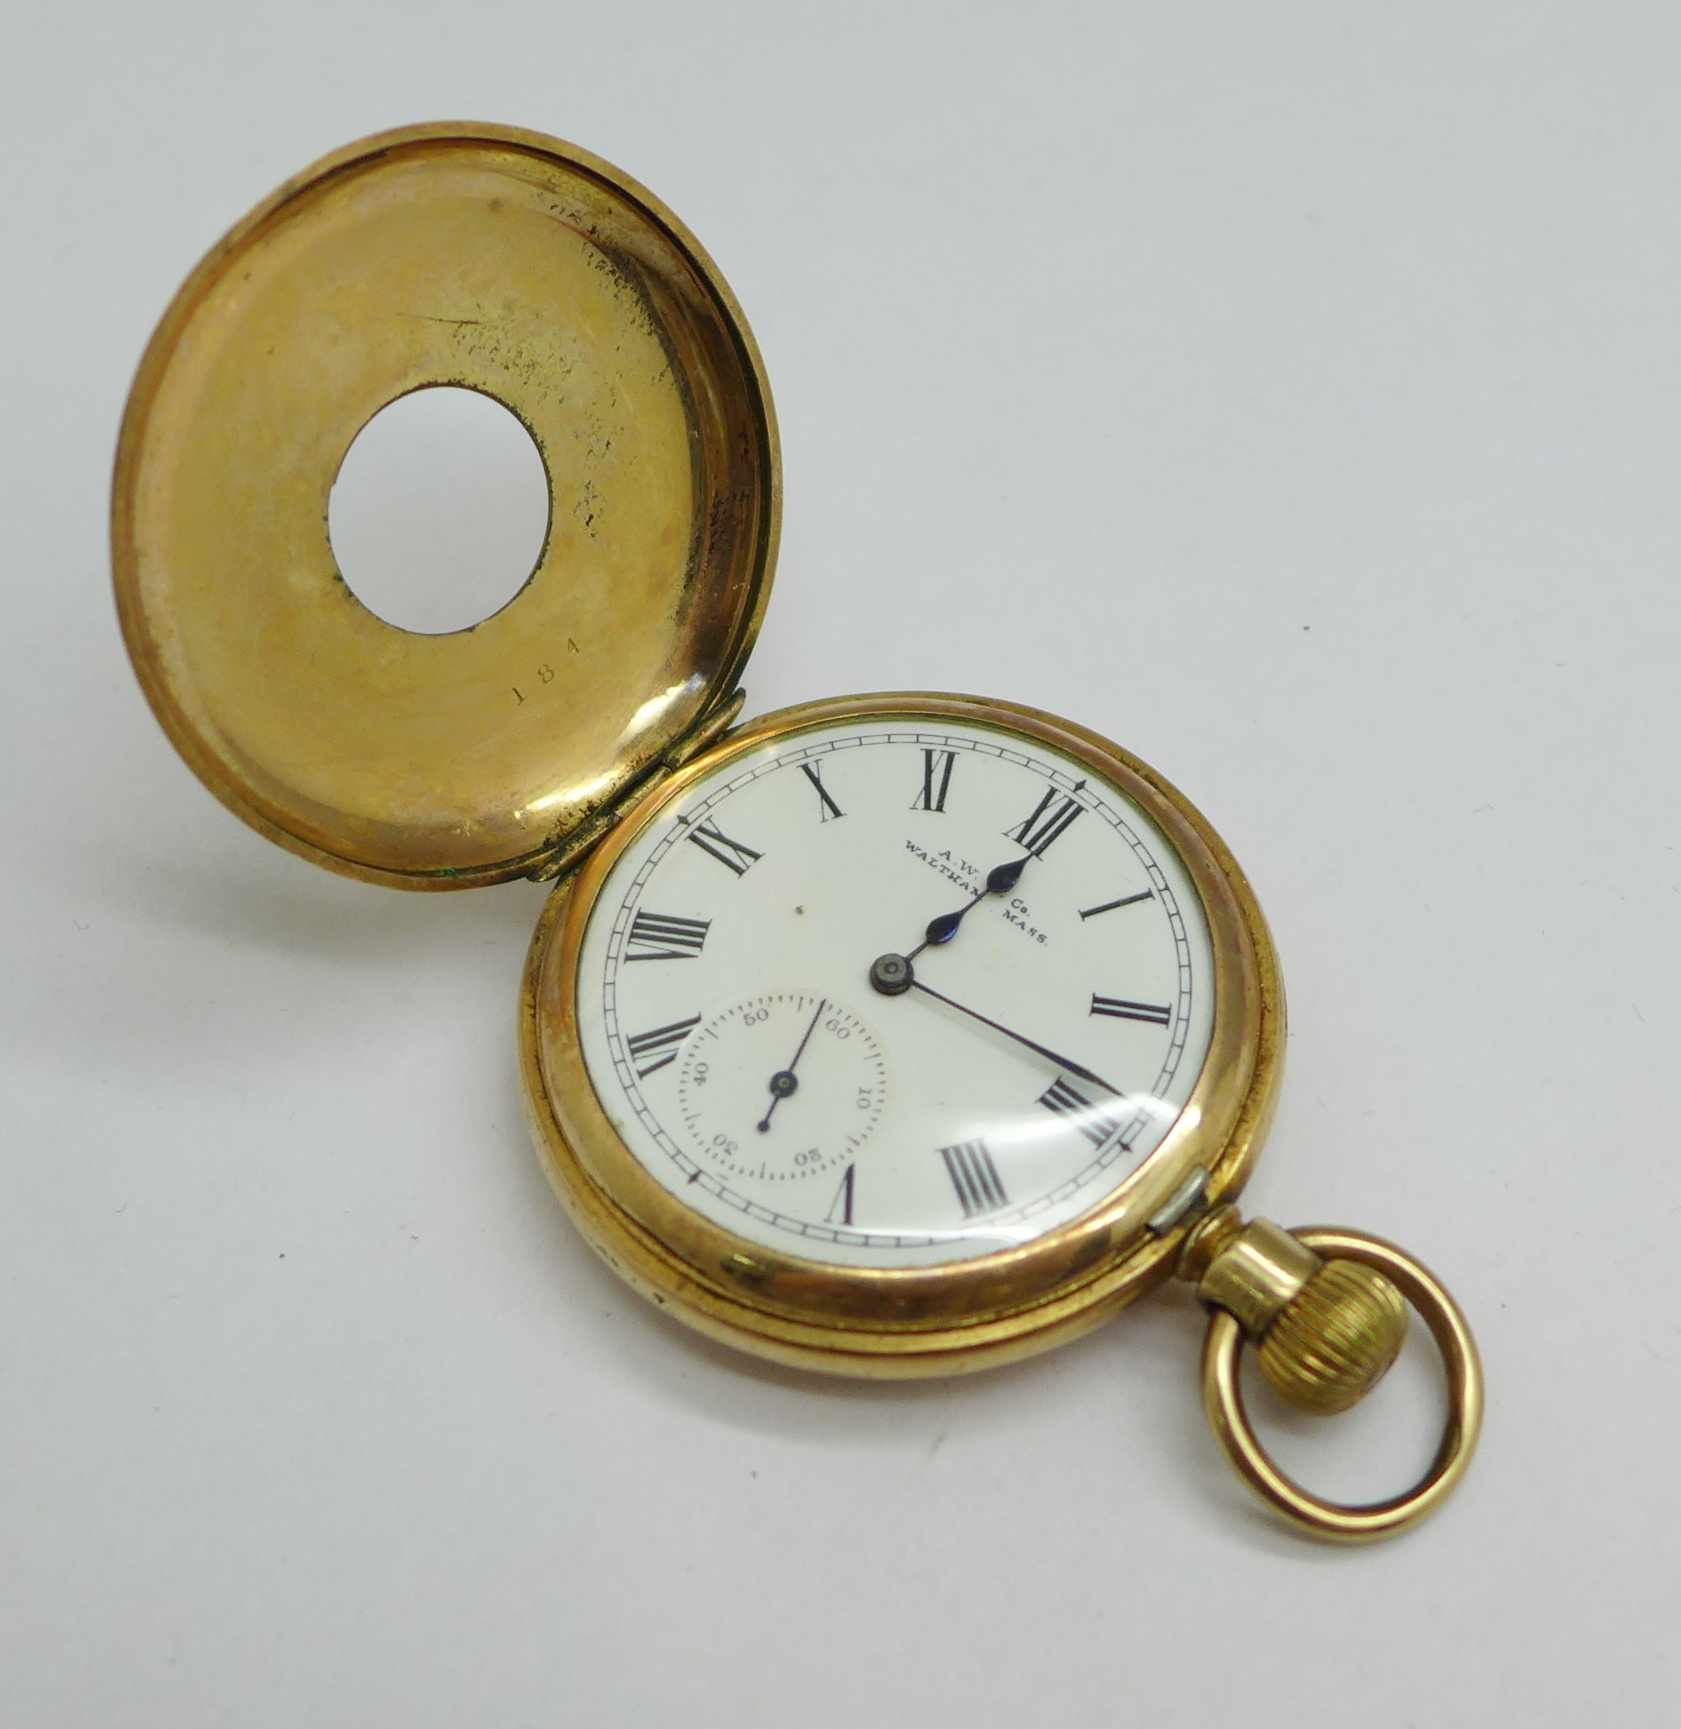 A Waltham gold plated half-hunter pocket watch, 4cm case - Image 3 of 4